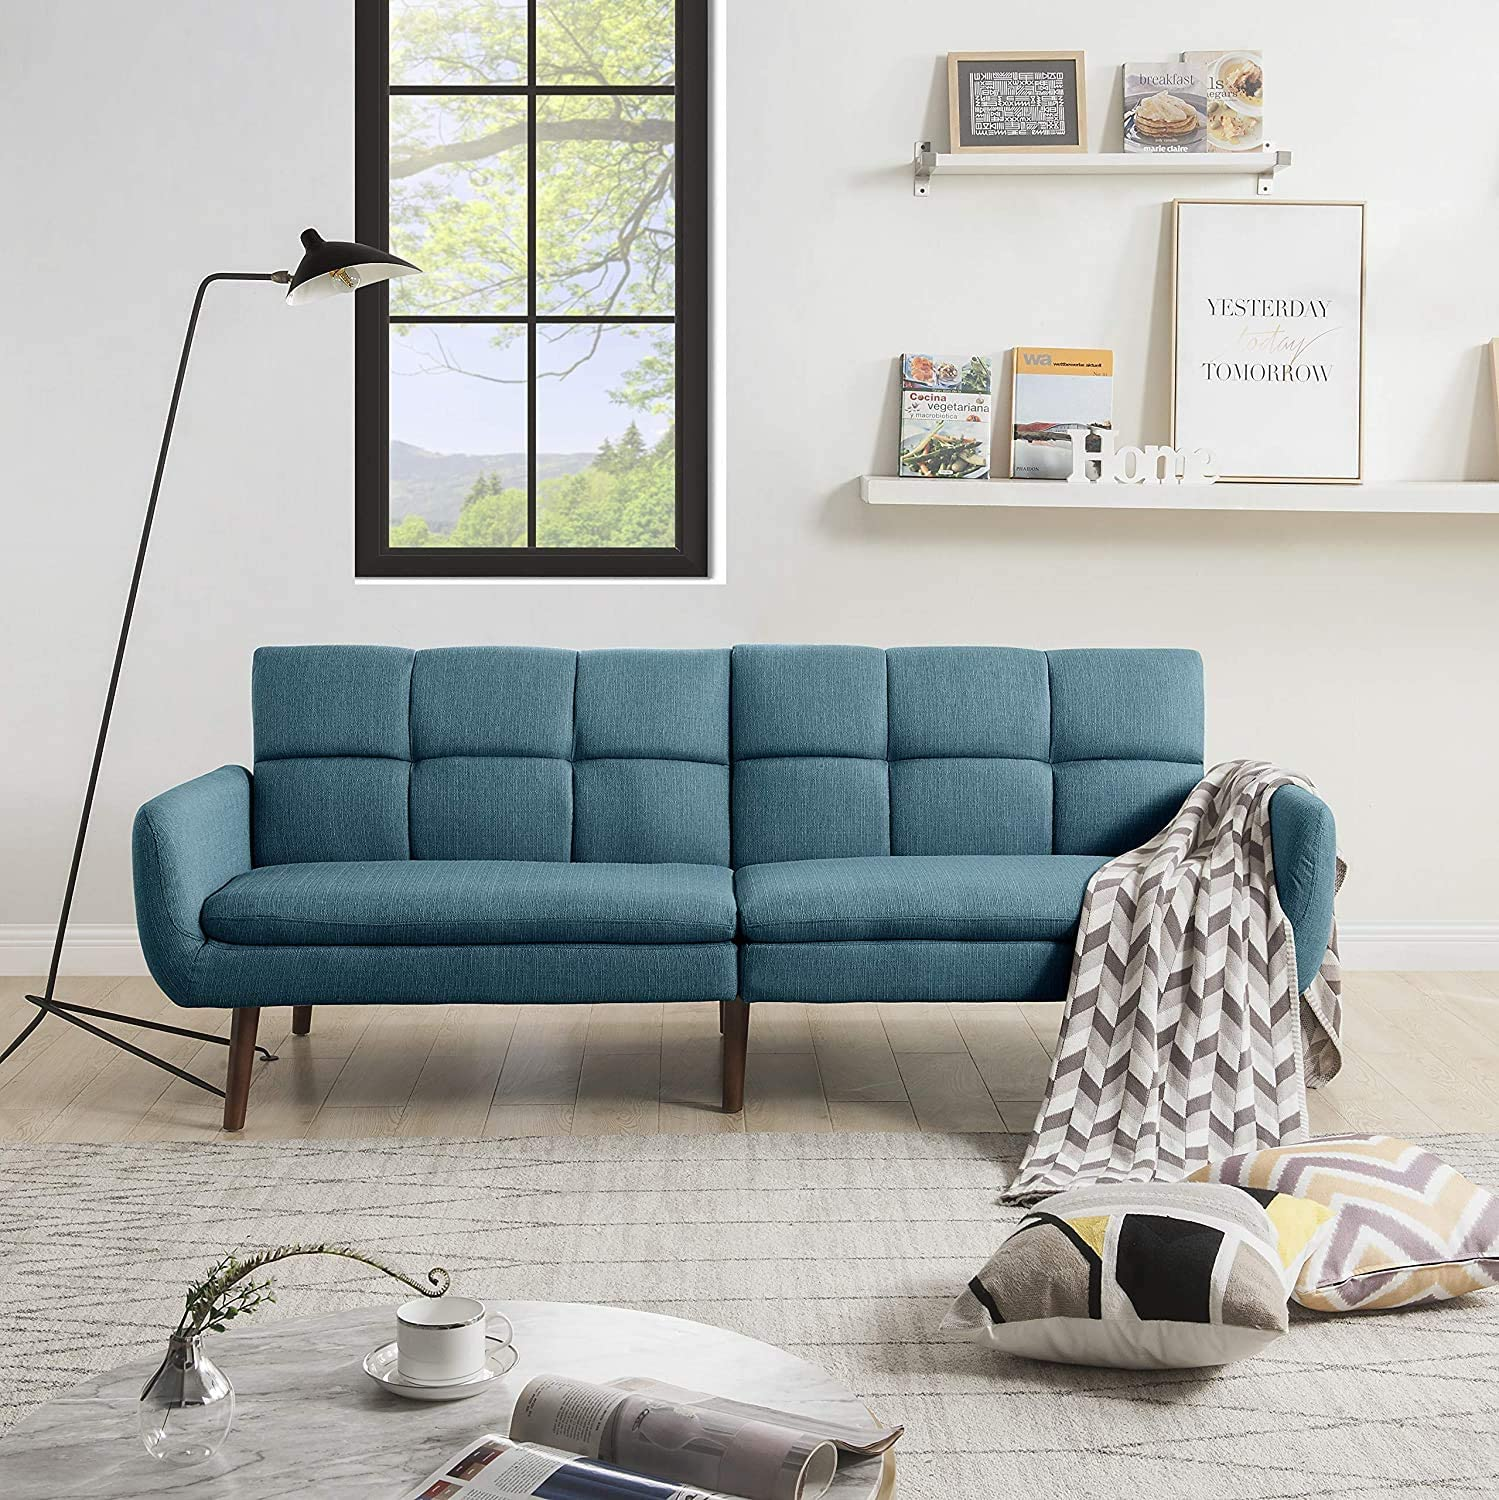 modern-blue-sleeper-sofa-for-small-spaces-tufted-backrest-wood-legs-mid-century-modern-furniture-ideas-for-tiny-home